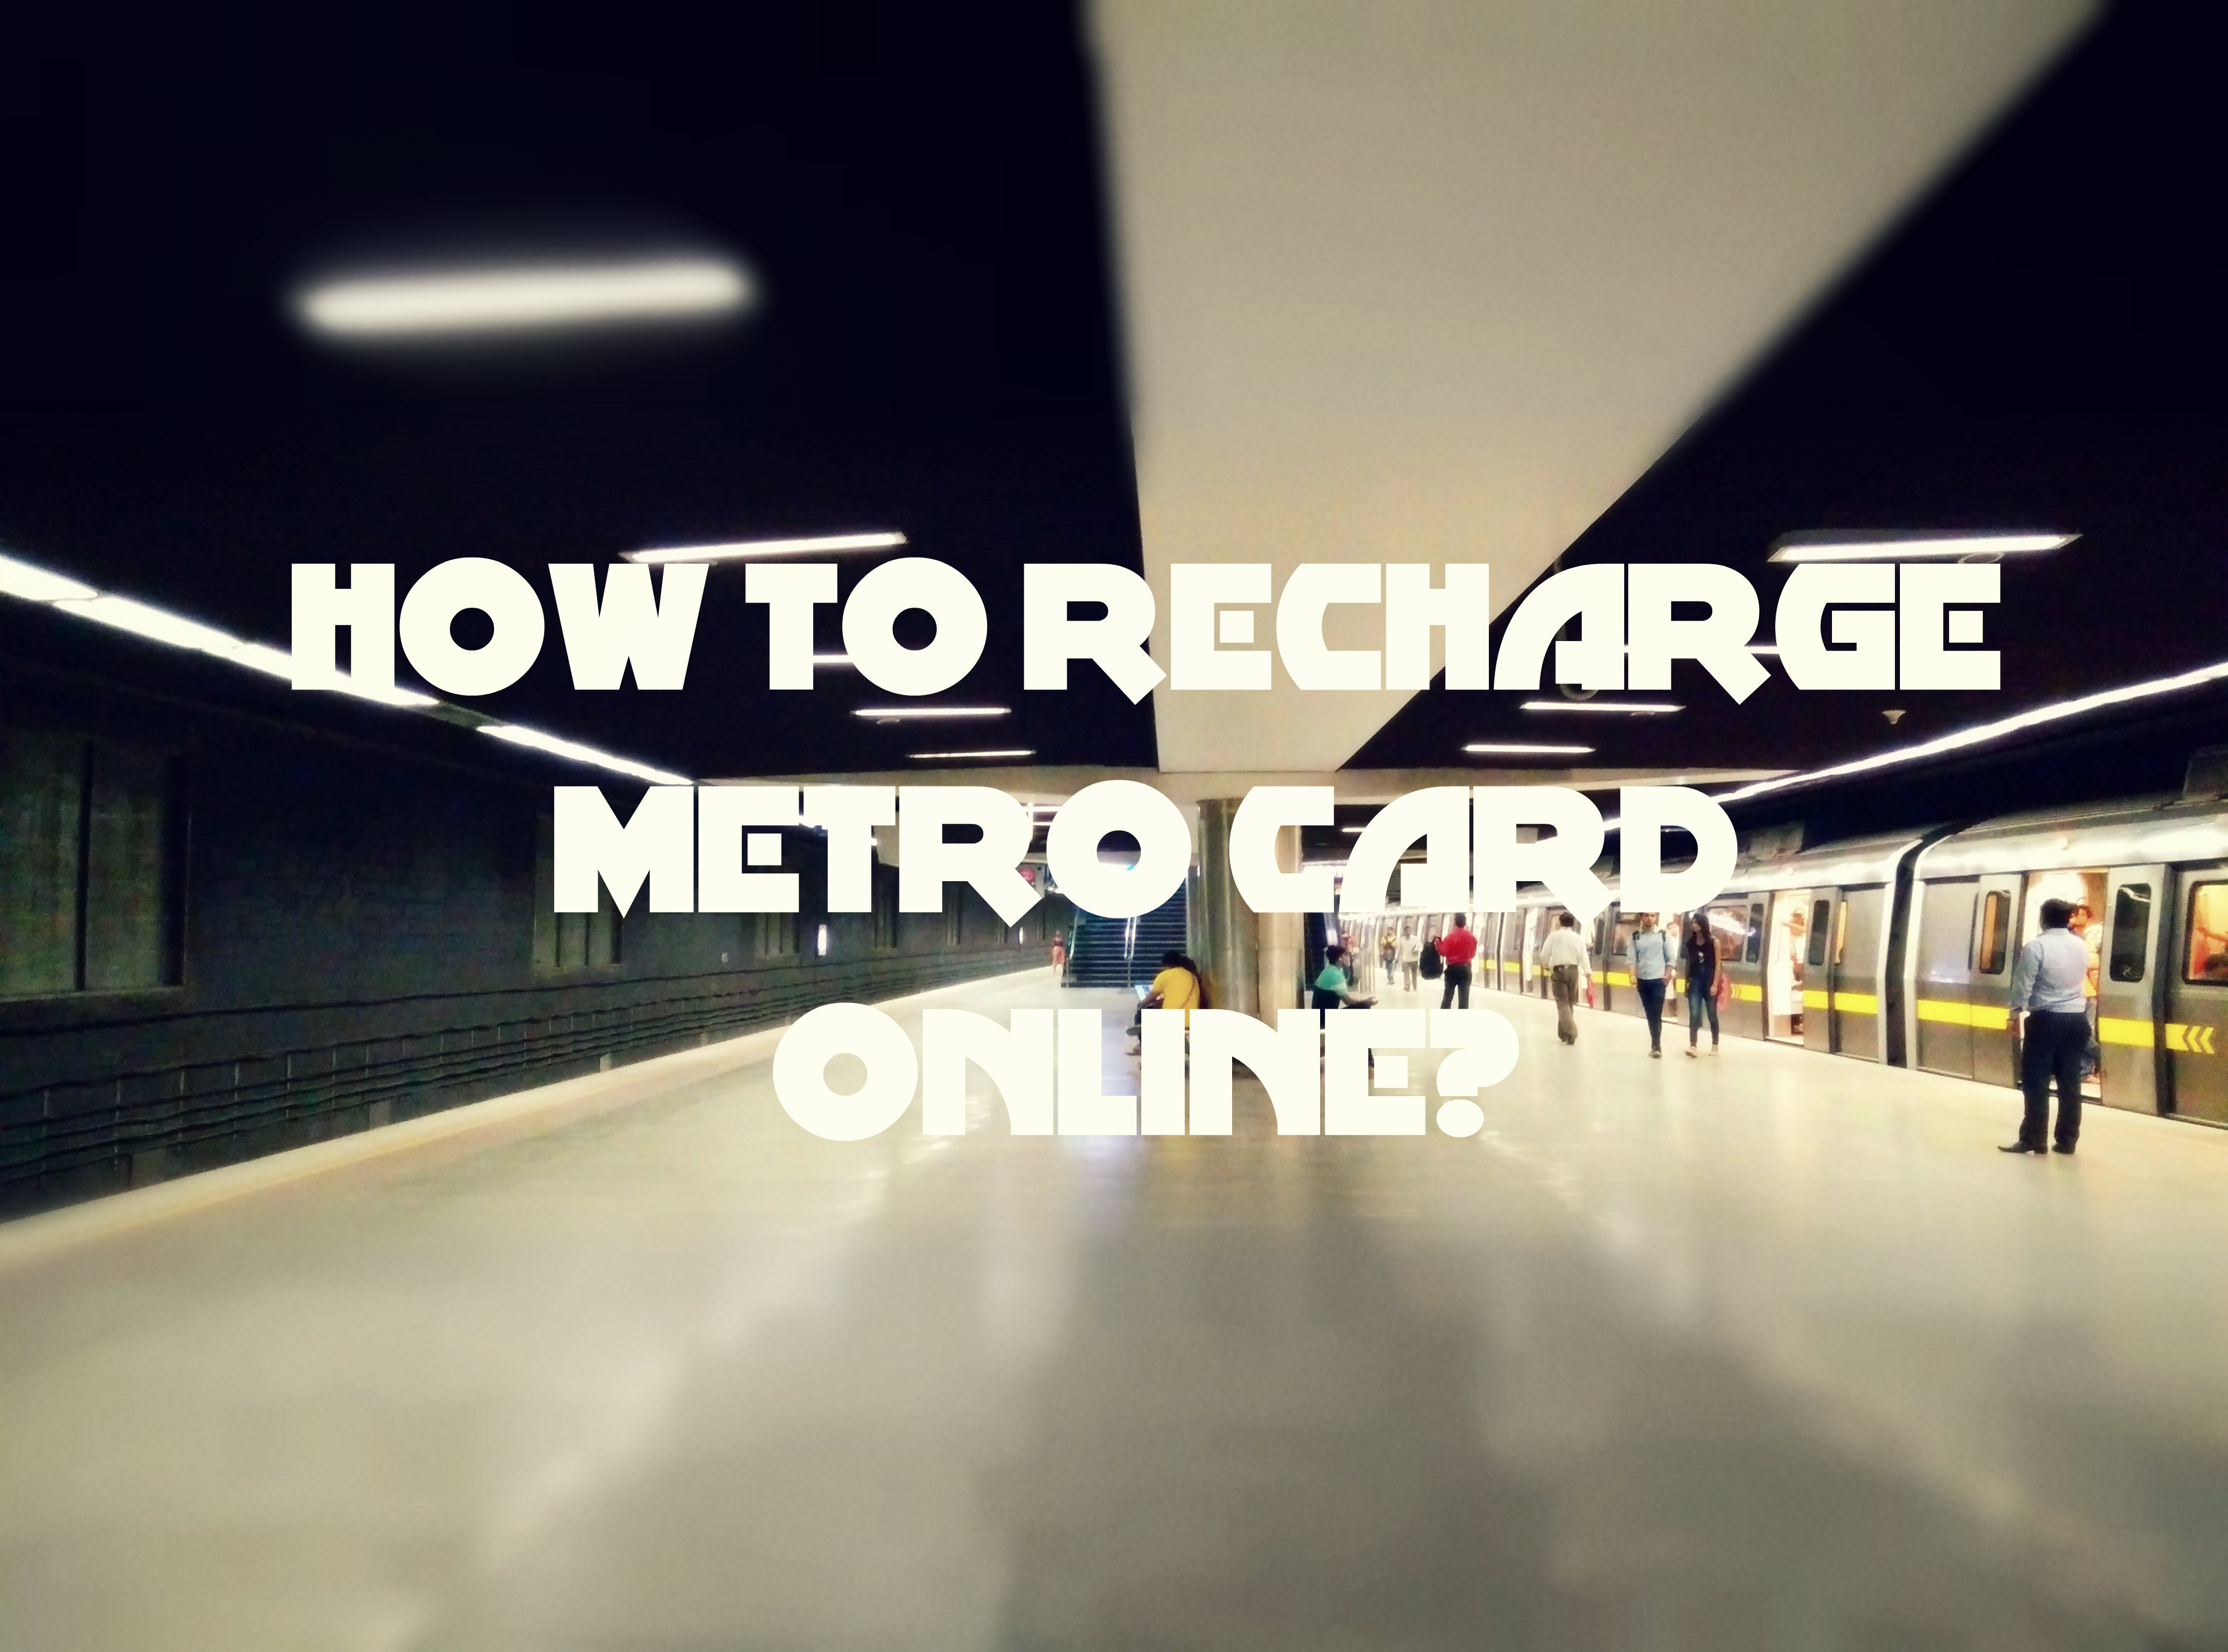 How To Recharge Metro Card Online Simple Steps Techulk